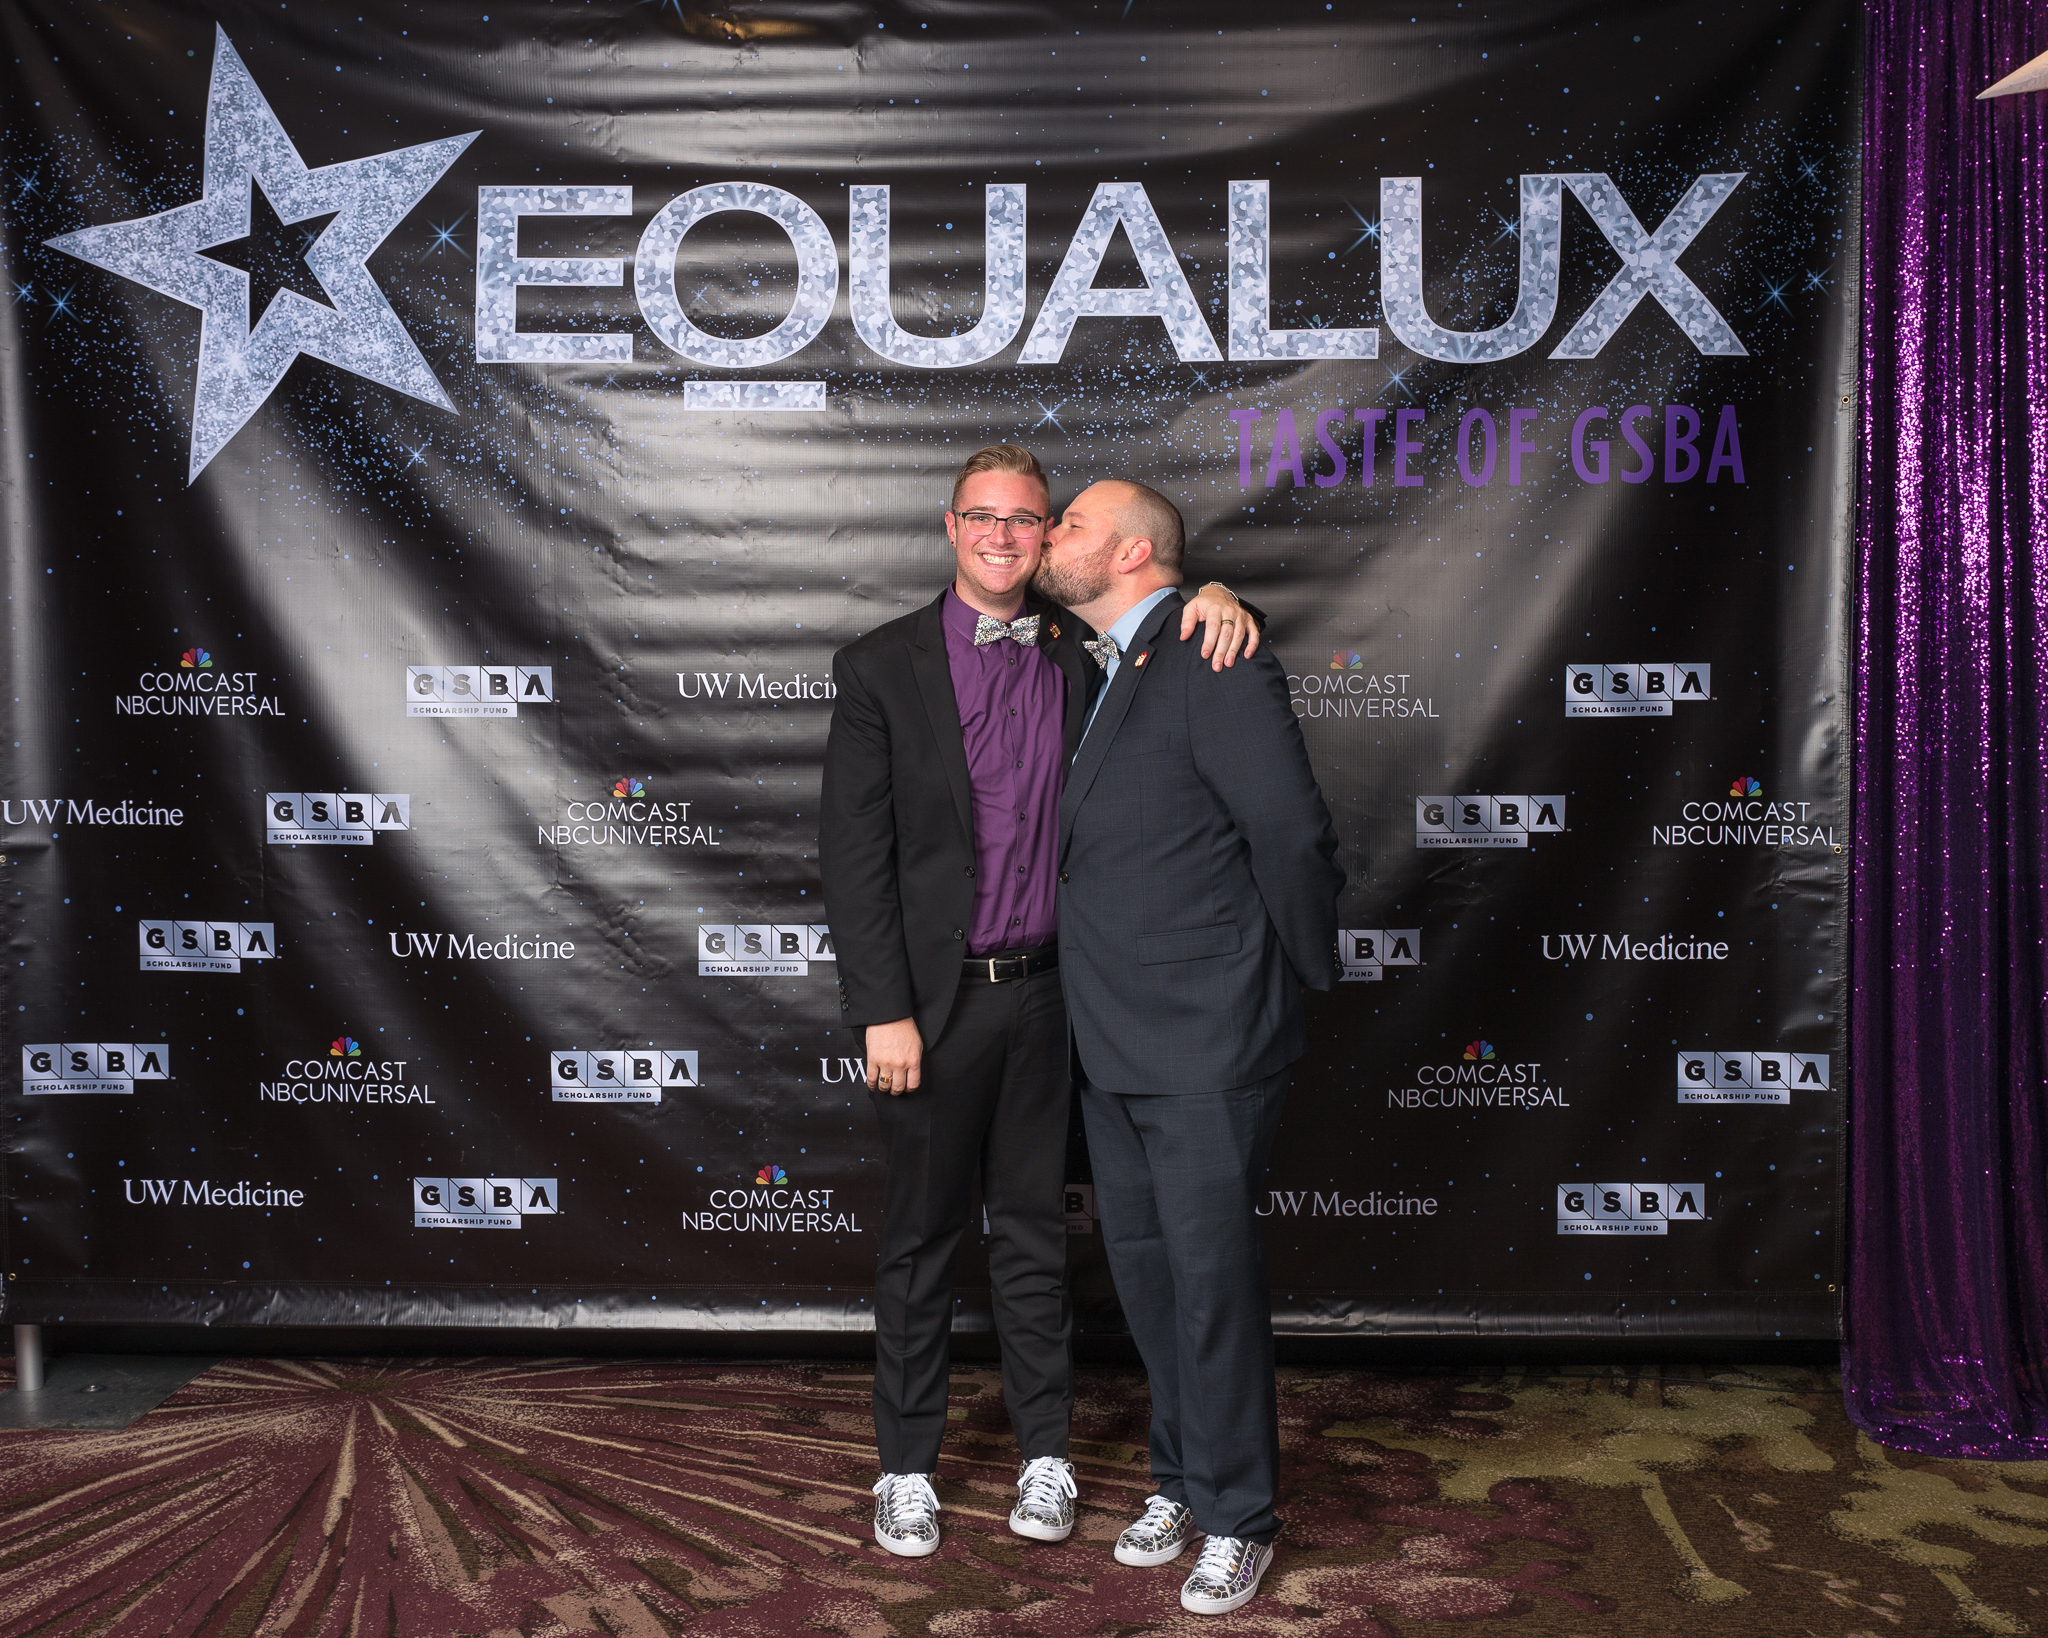 111718_GSBA EQUALUX at The Westin Seattle (Credit- Nate Gowdy)-185.jpg